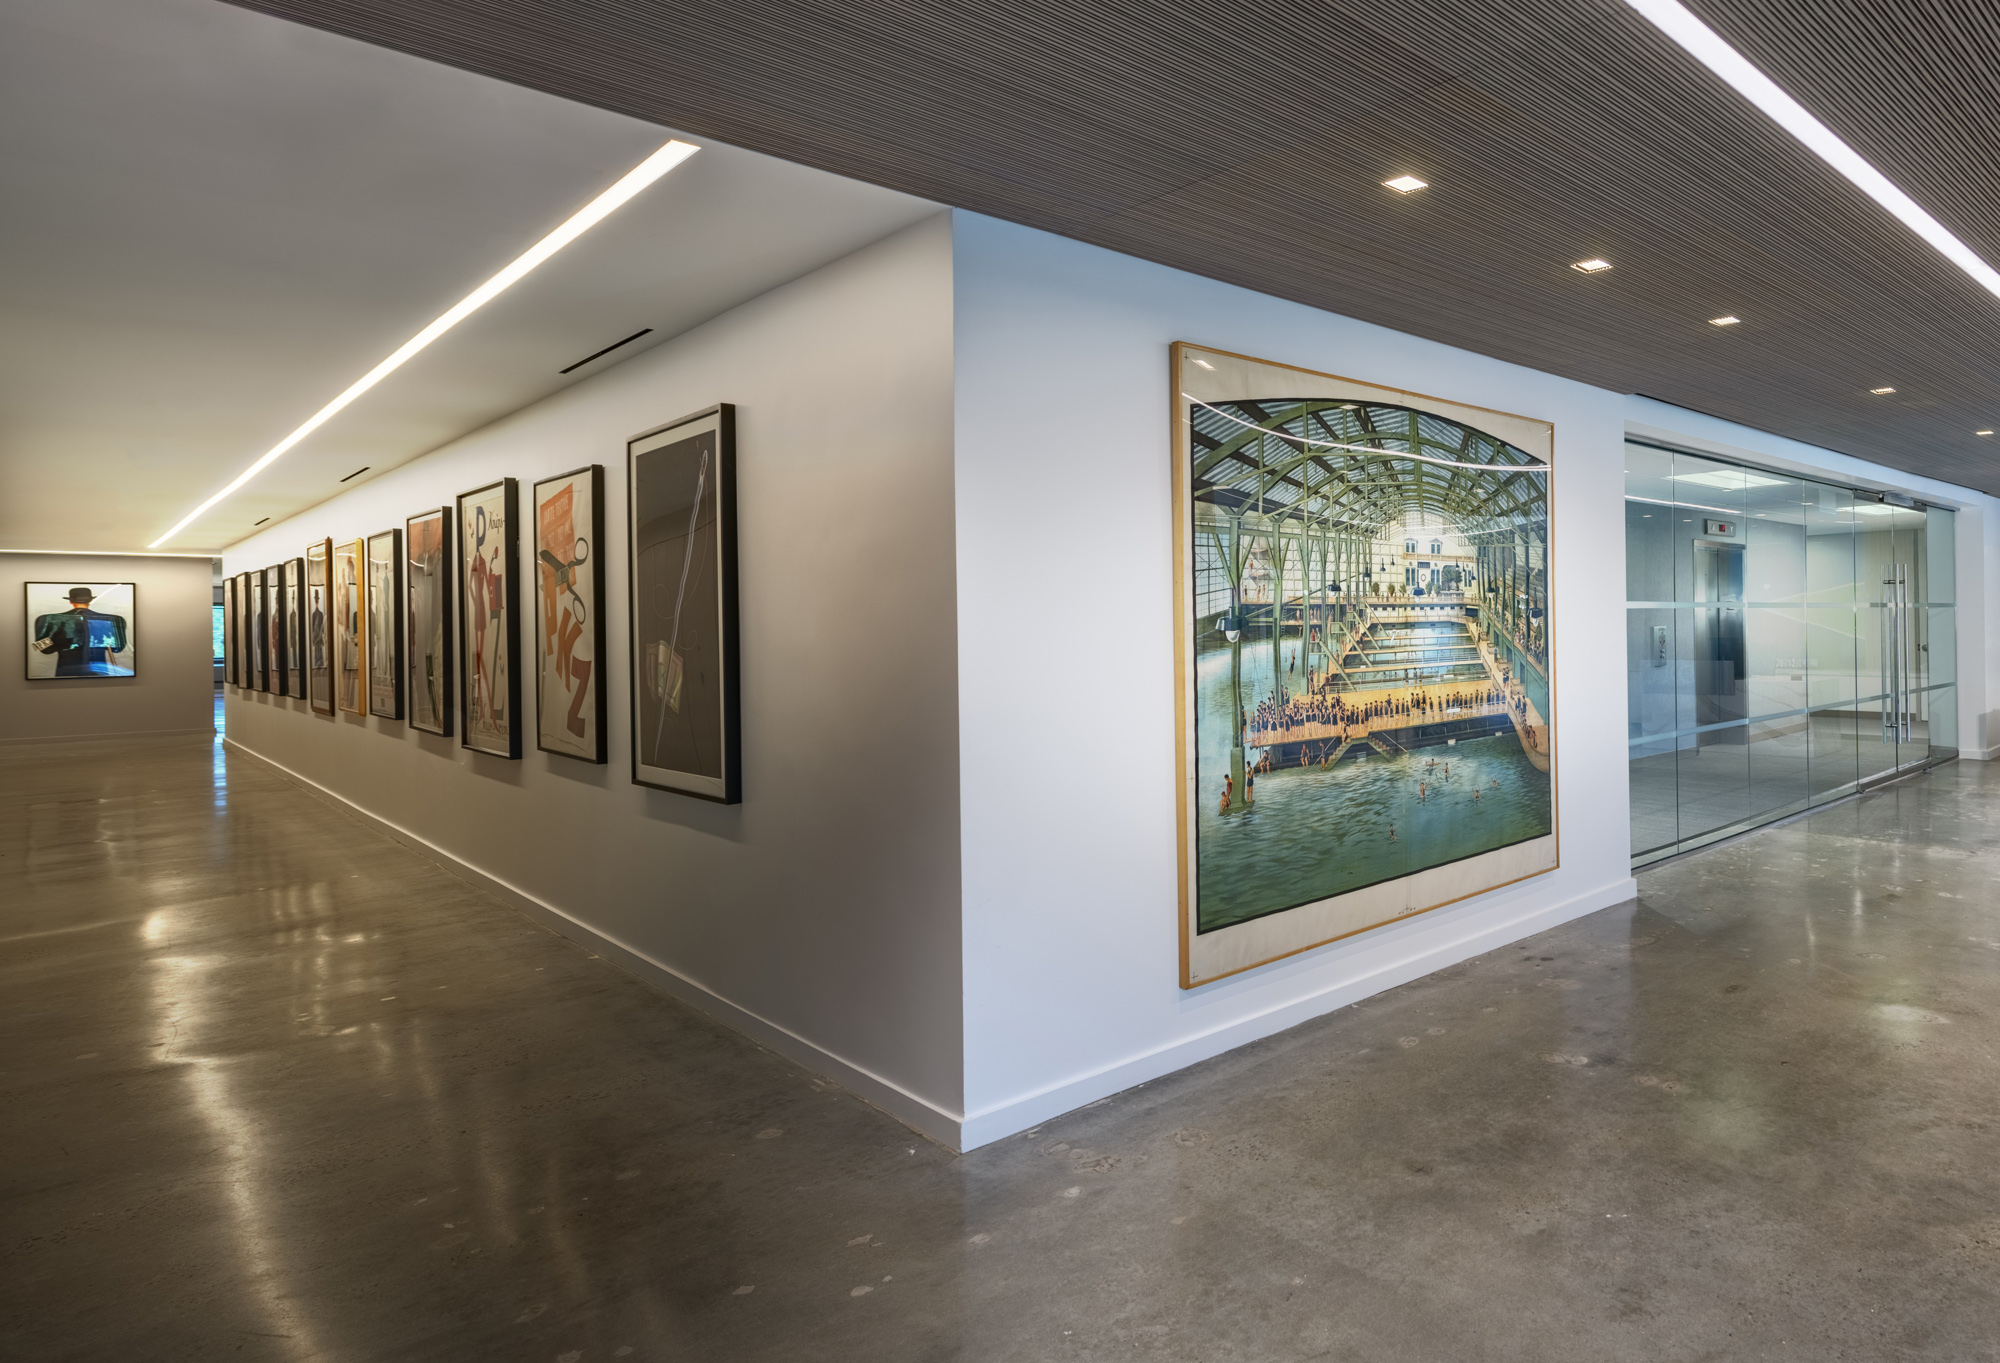 Polished, modern corporate office with receding hallway of posters; white, blue, gray